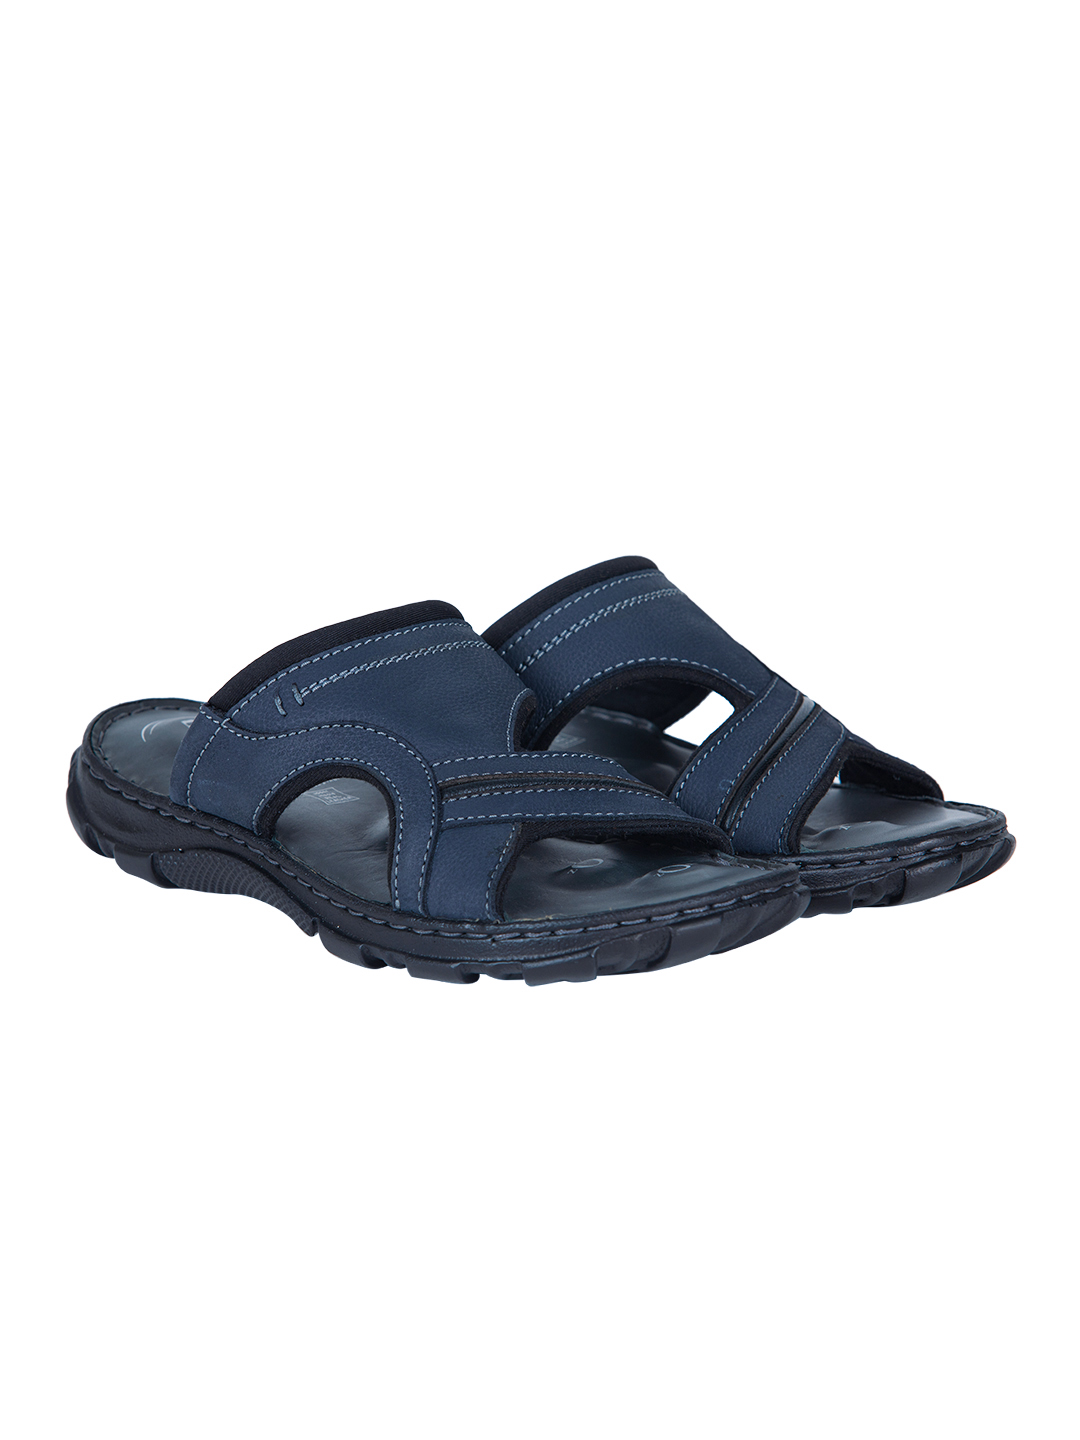 Buy VON WELLX GERMANY COMFORT BLUE OLIVER SLIPPERS In Delhi